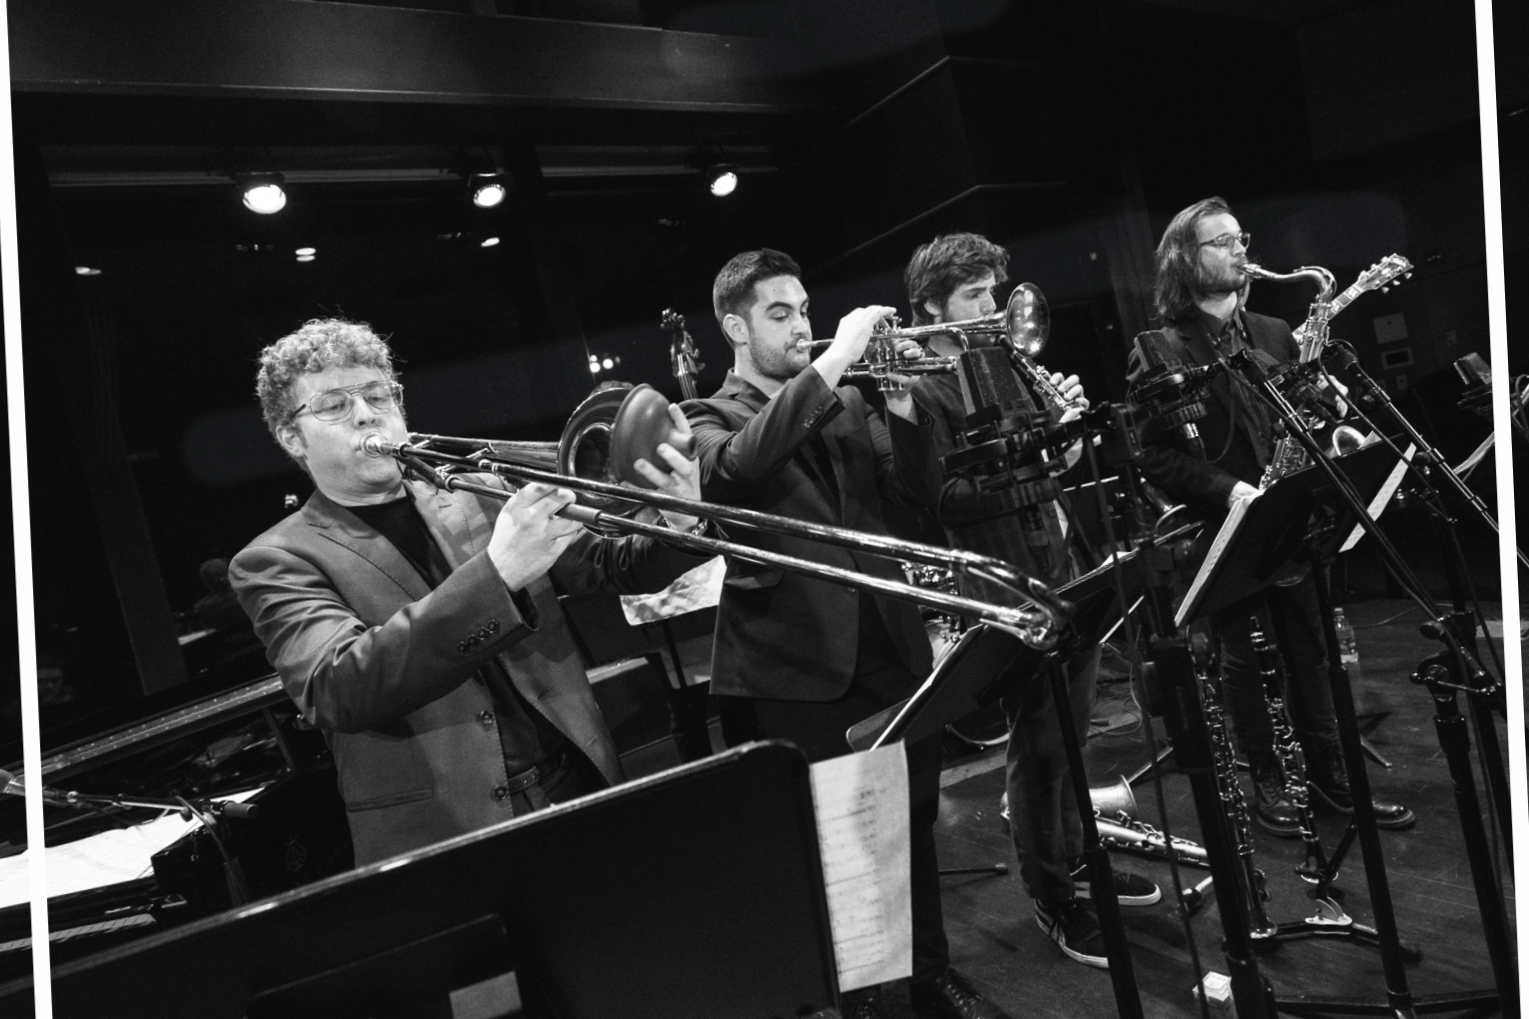 live at dizzy's club coca cola, june 2018 —  photo by kevin jiang  left to right: sam chess, noah halpern, gideon tazelaar, xavier del castillo (not pictured: dan chmielinski, robbie lee, gabe schnider)